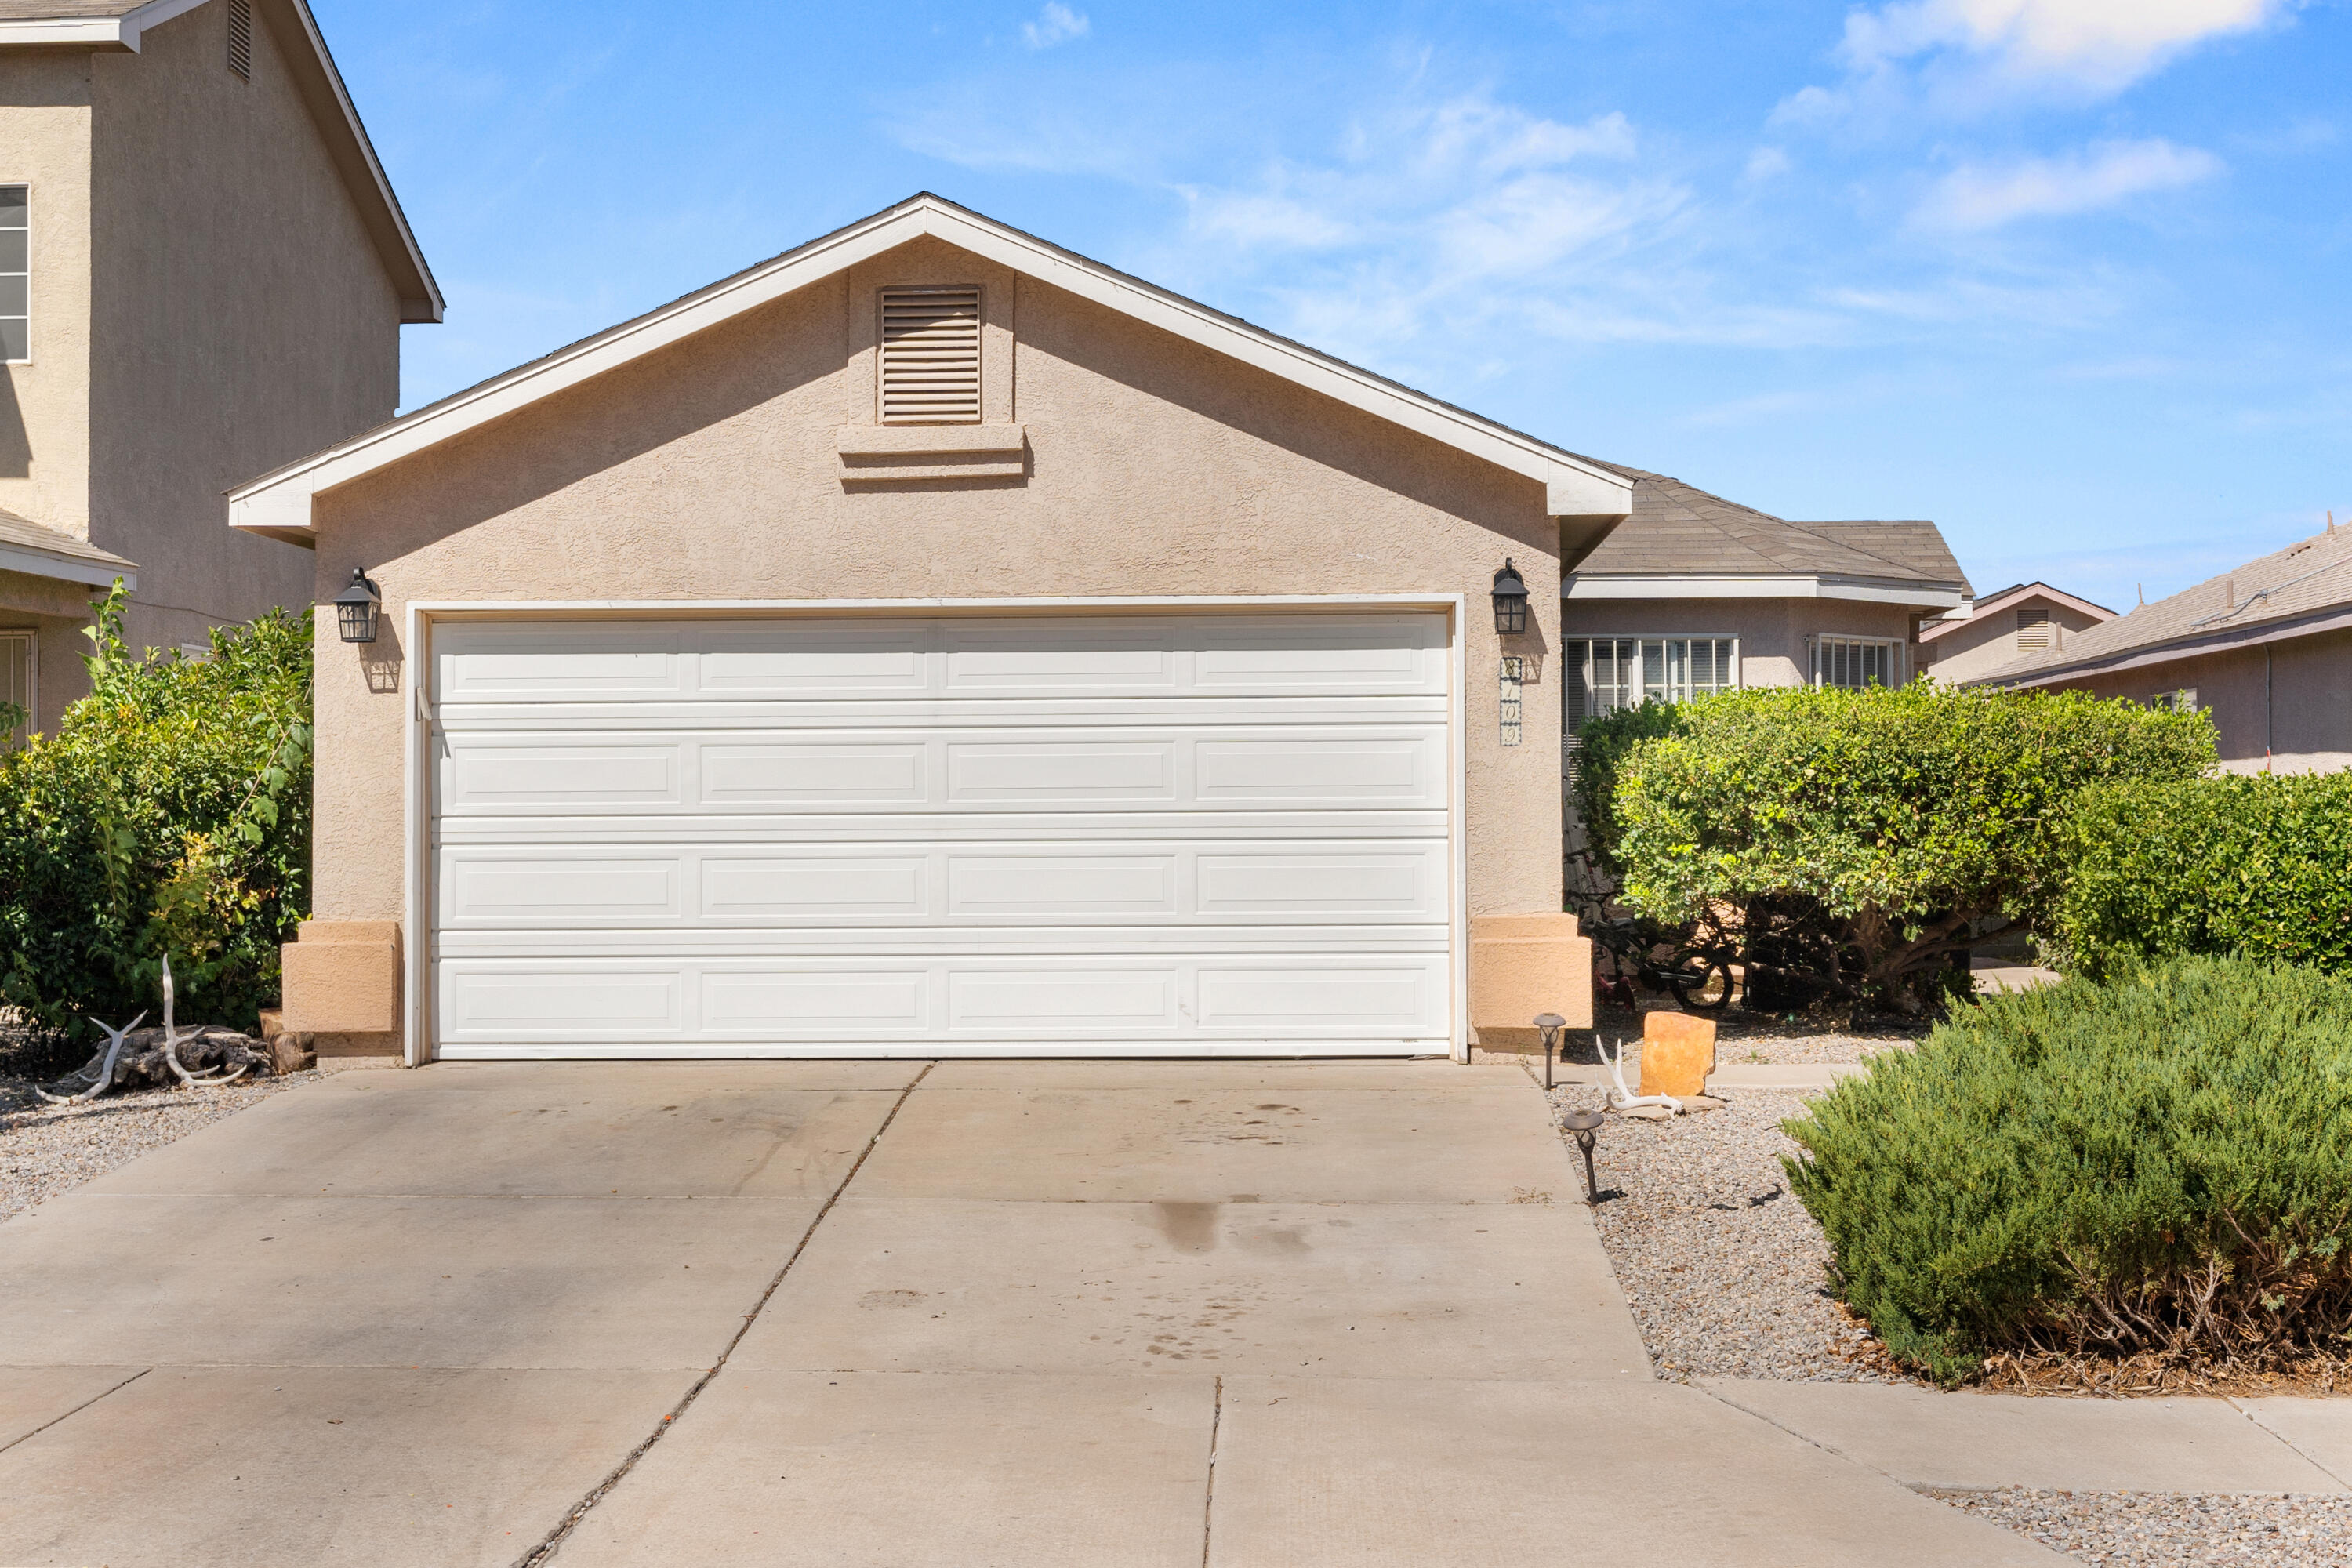 Beautiful home located in the gated community of Vista Sandia.  Open floor plan with laminate wood flooring and tile throughout. Beautiful backyard to relax in on those summer days. This beauty won't last long , schedule your showing today.